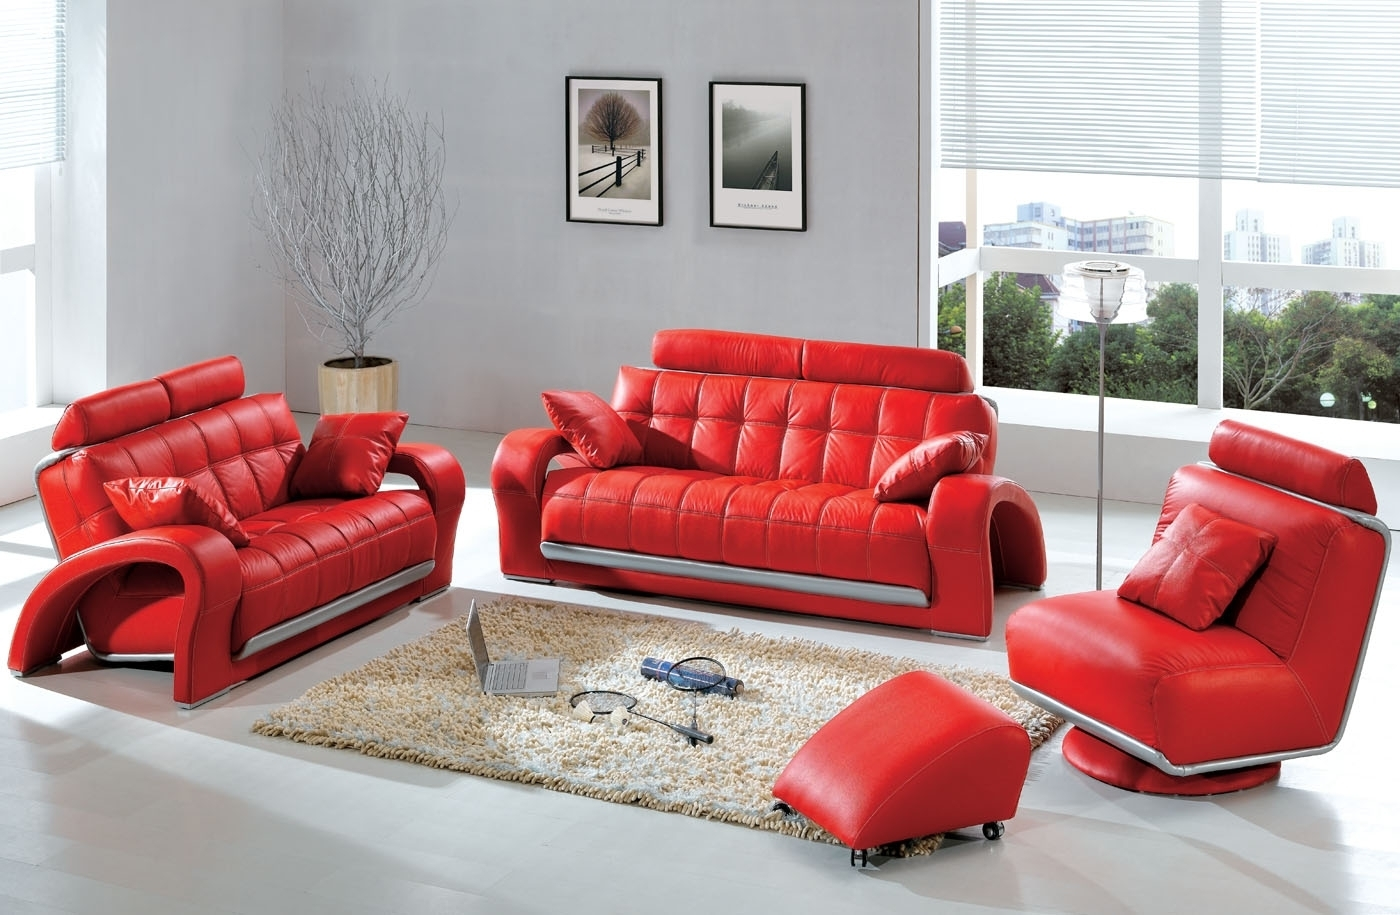 Modern & Contemporary Leather Sofa & Sectional Sets | Funky With Regard To Red Leather Couches For Living Room (Image 4 of 10)